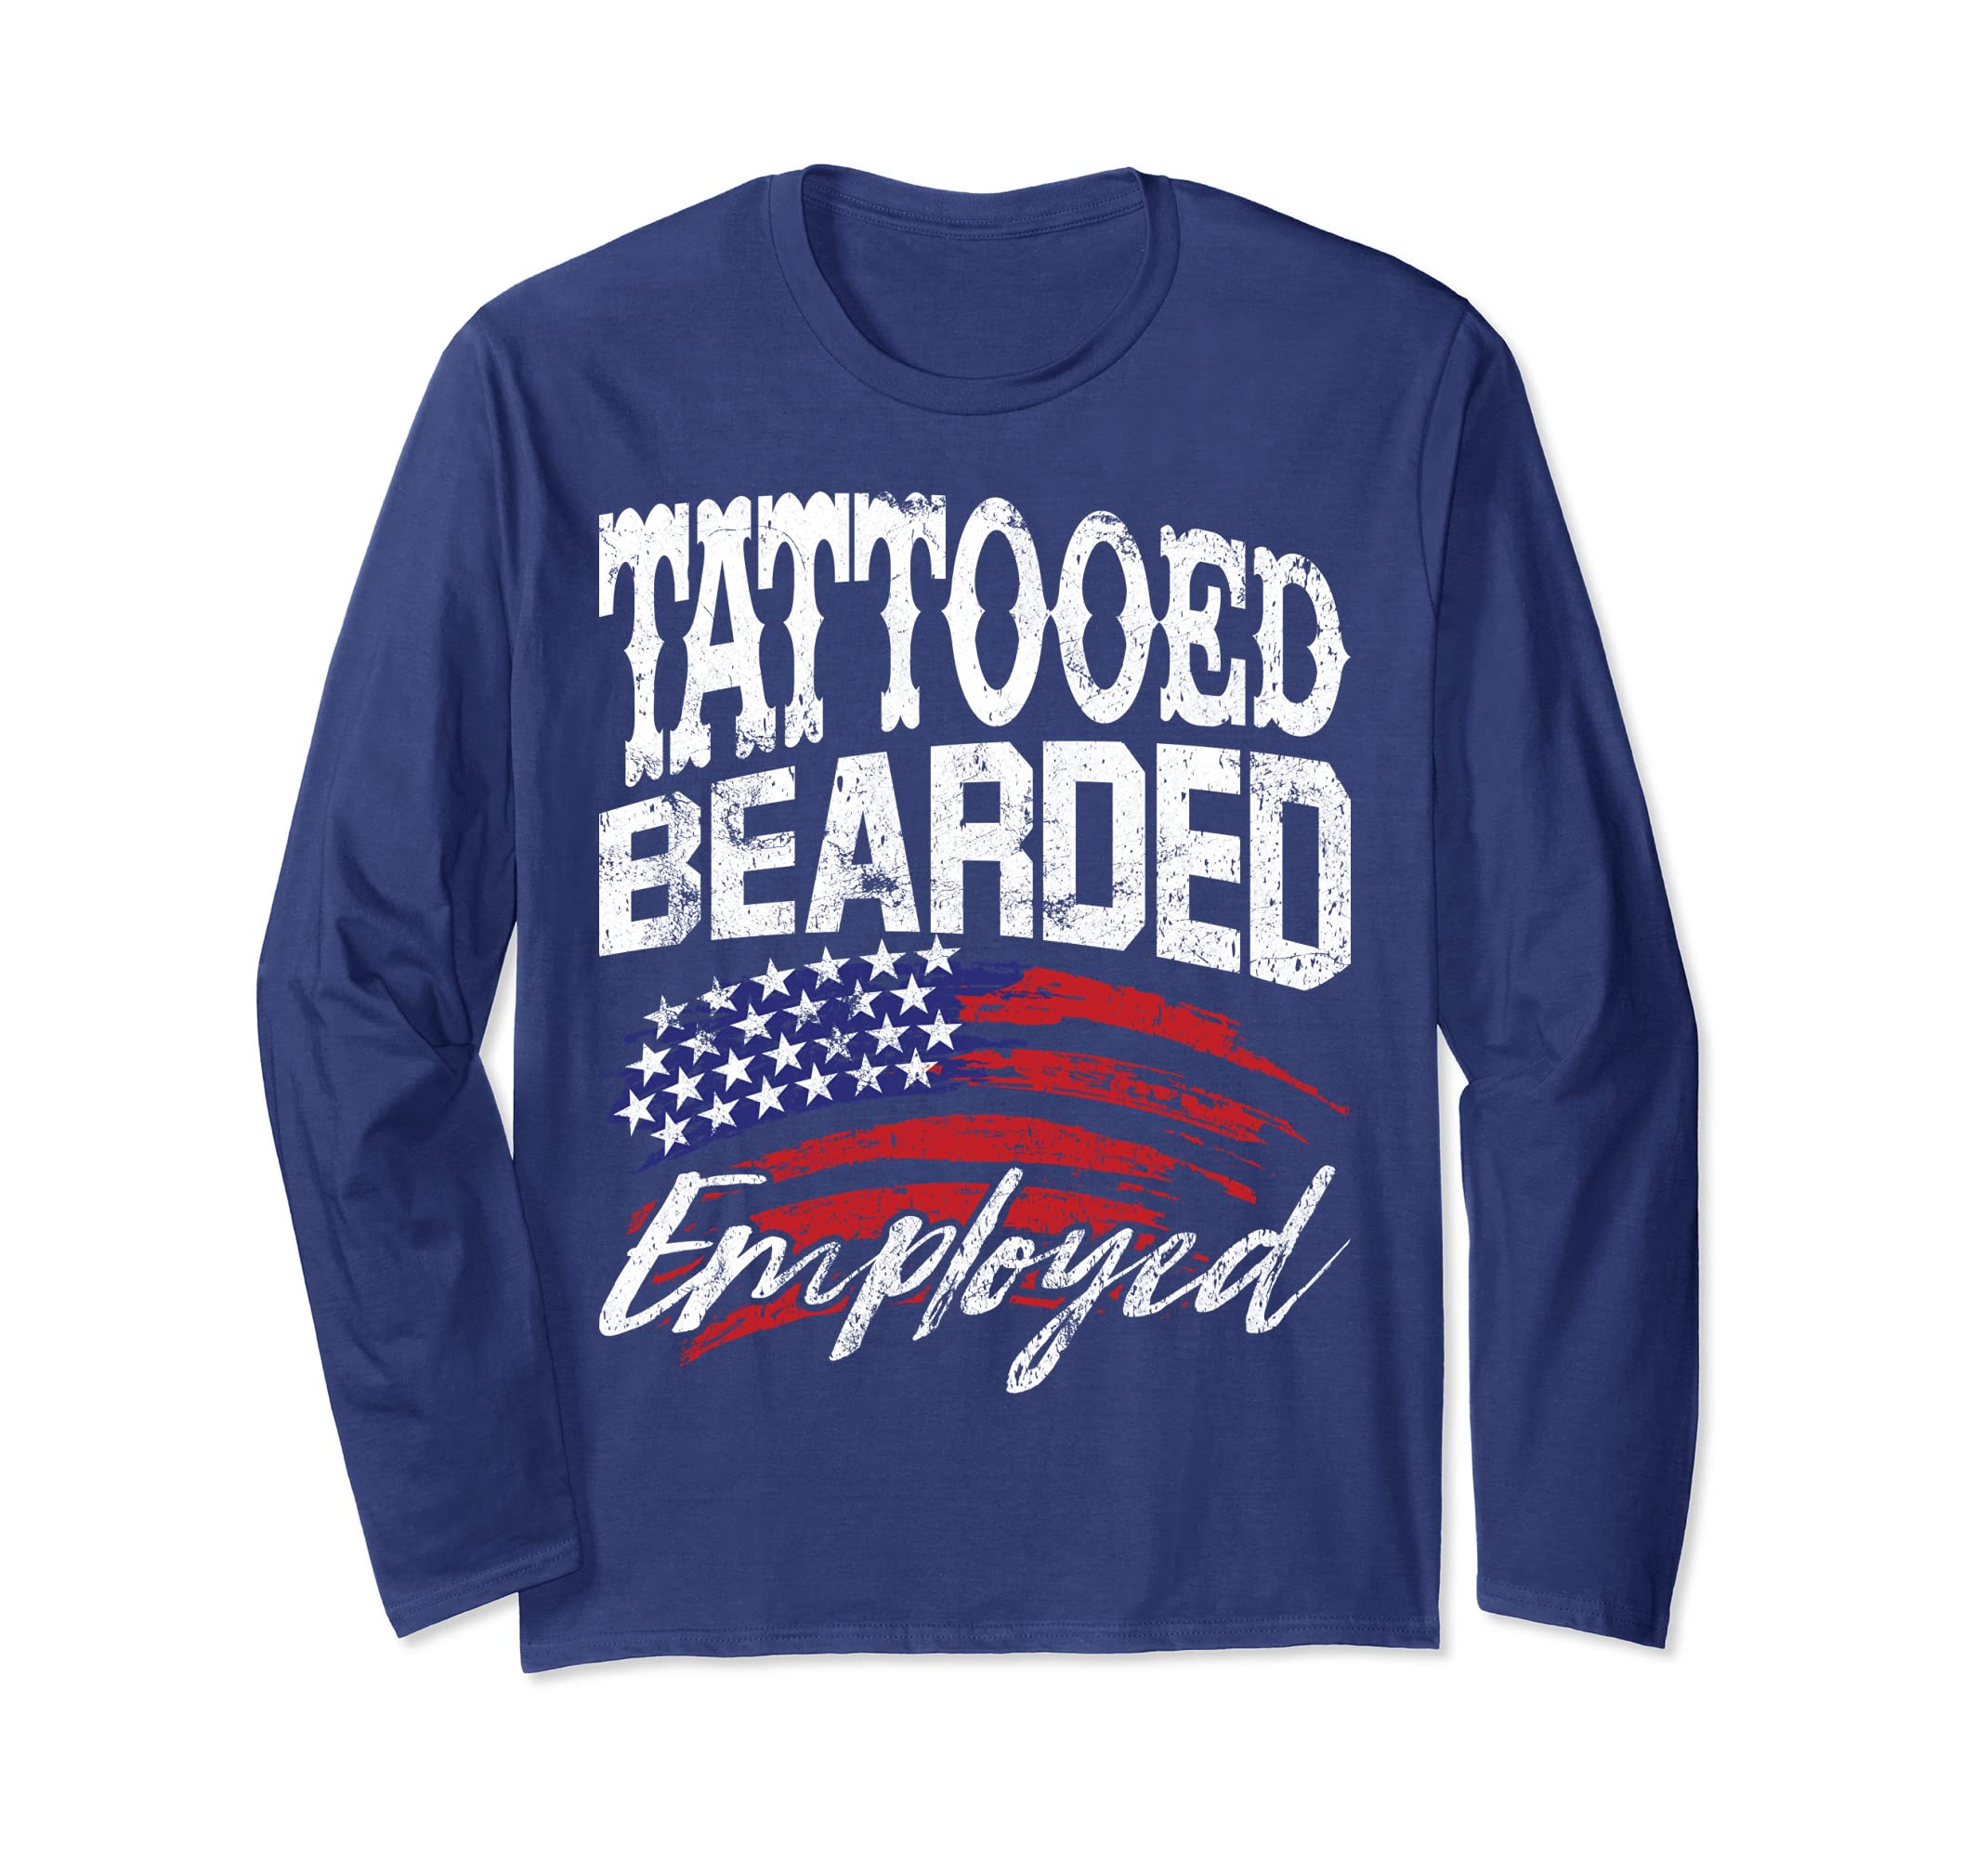 ebe97654691 Amazon.com  Tattooed Bearded Employed Vintage Tattoo Beard Long Sleeve   Clothing